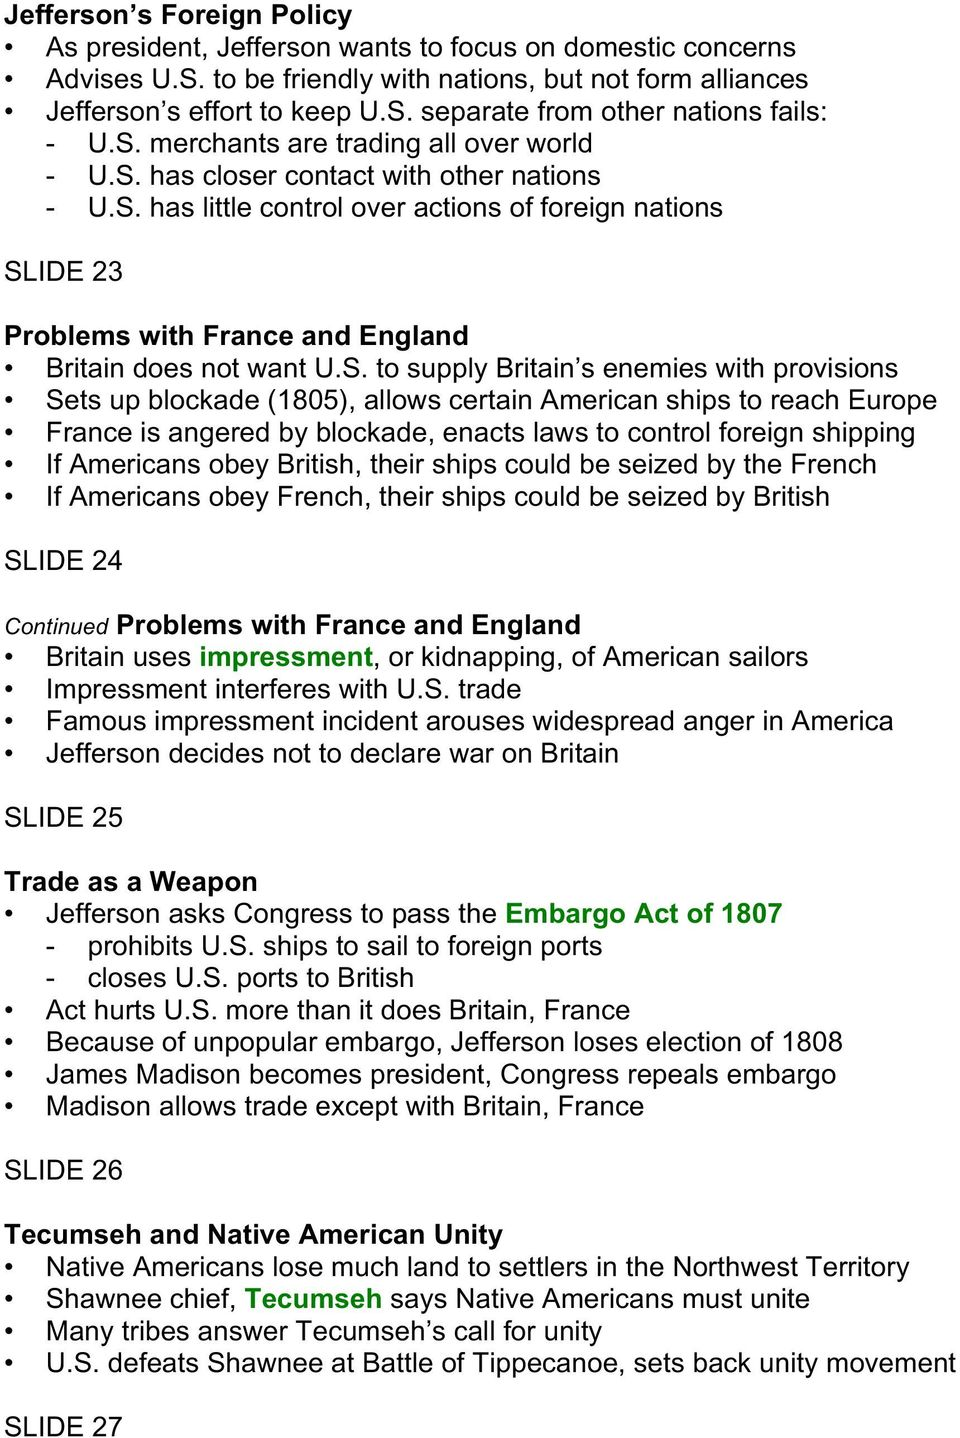 S. to supply Britain s enemies with provisions Sets up blockade (1805), allows certain American ships to reach Europe France is angered by blockade, enacts laws to control foreign shipping If